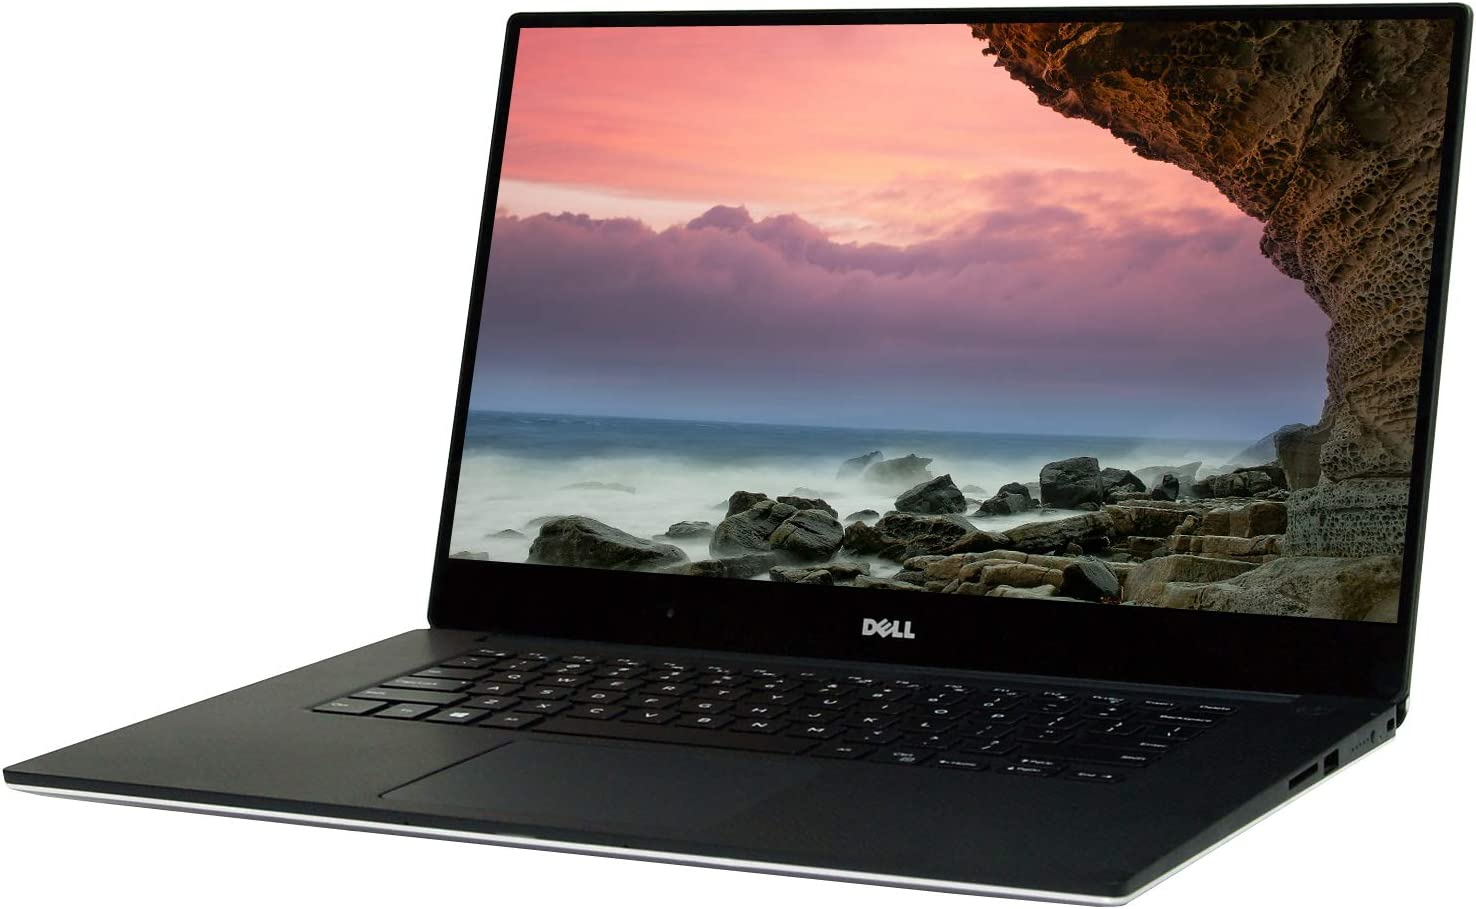 Dell Precision 5510 15.6in UHD Laptop, Core i7-6820HQ 2.7GHz, 16GB RAM, 480GB Solid State Drive, Windows 10 Pro 64bit, CAM, Touch (Renewed)